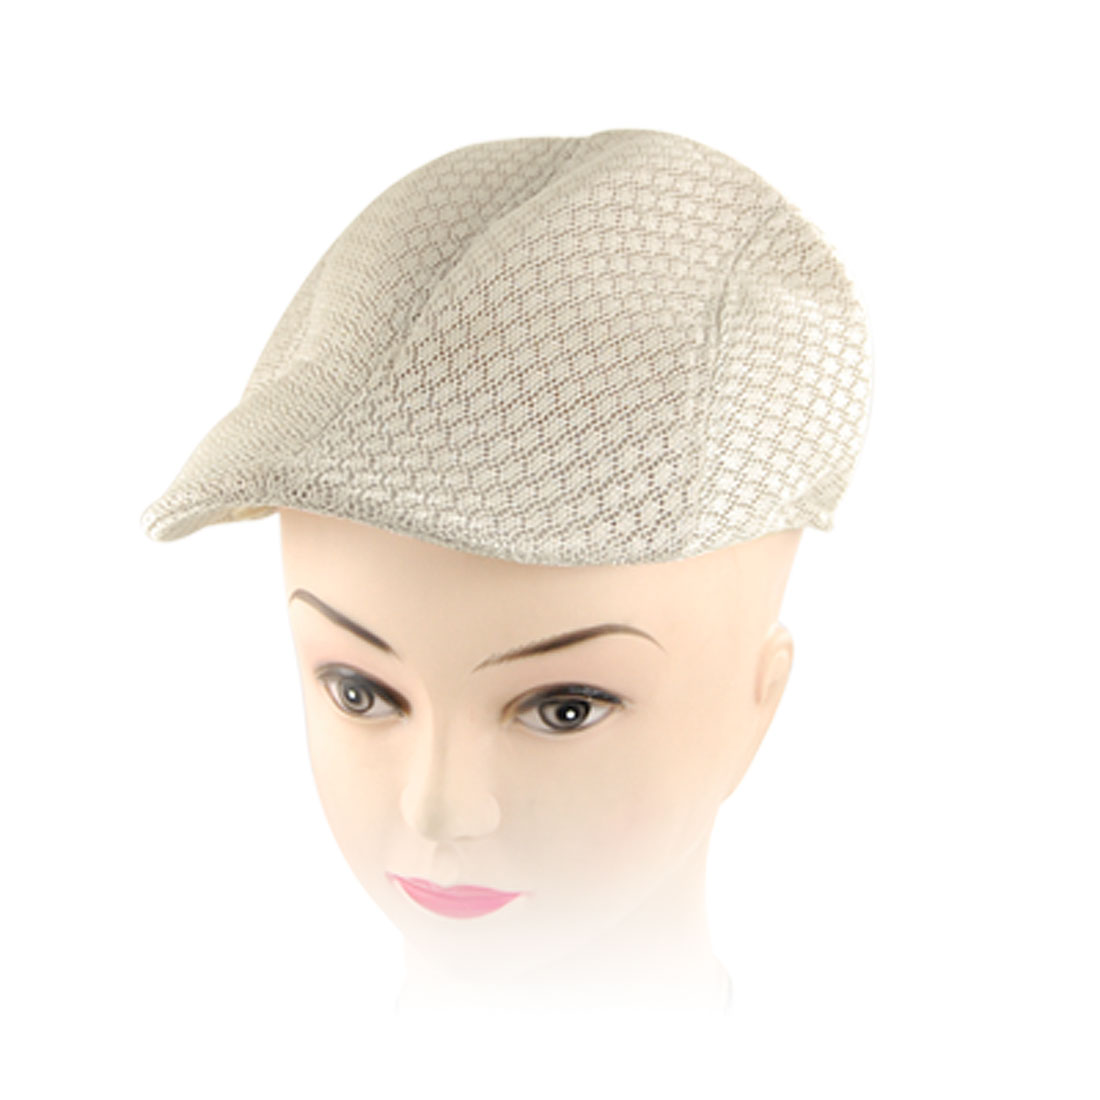 Lady Sponge Filled Beige Breathable Mesh Cabbie Visor Hat Cap